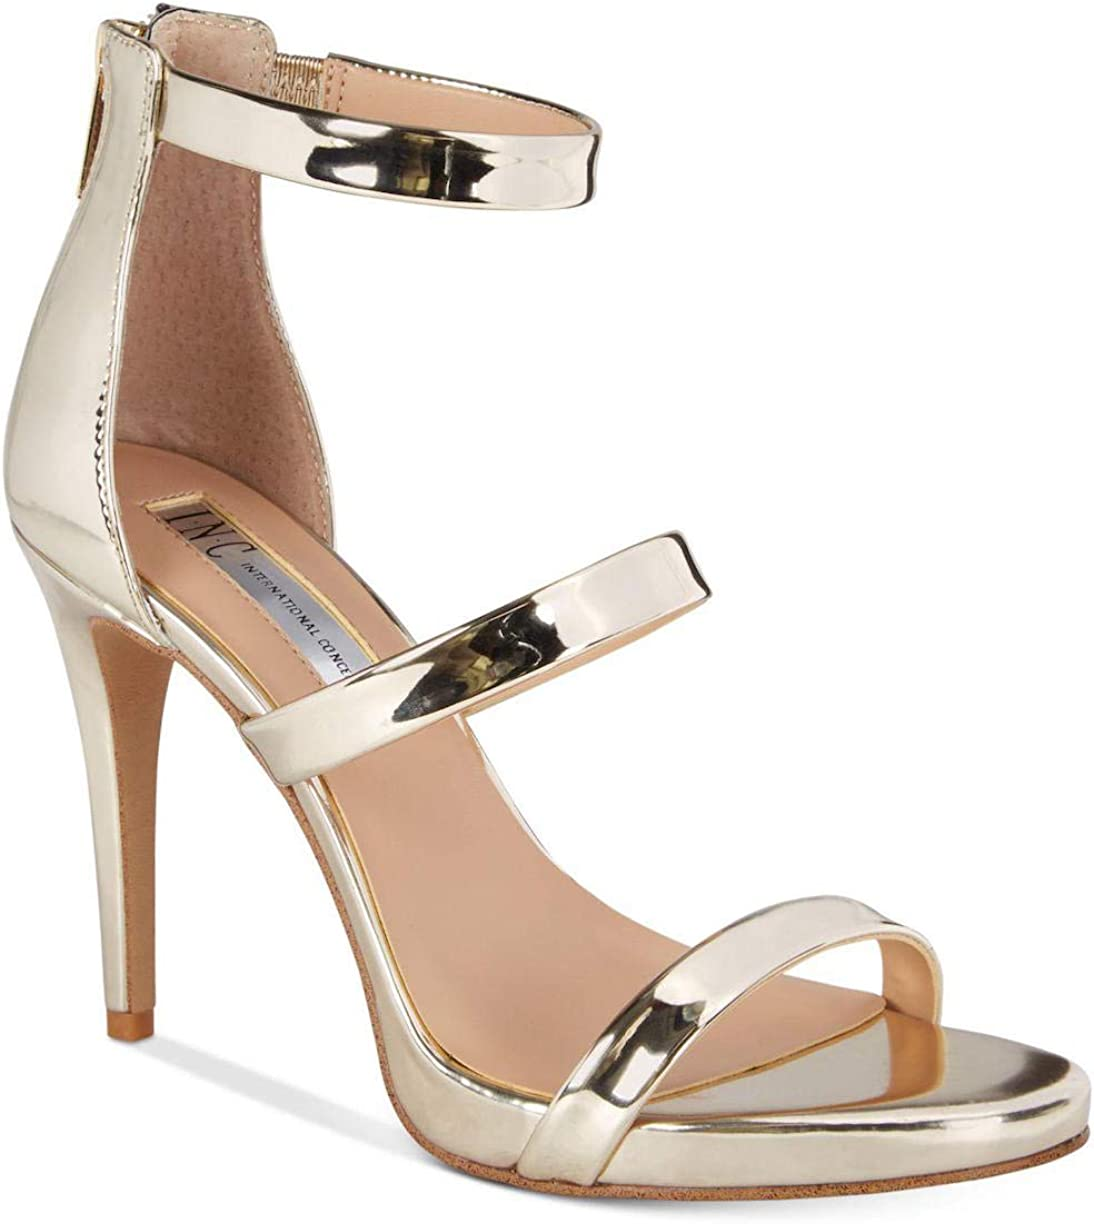 INC International Concepts Womens Sadiee Leather Open Toe Pale Gold Size 9.0